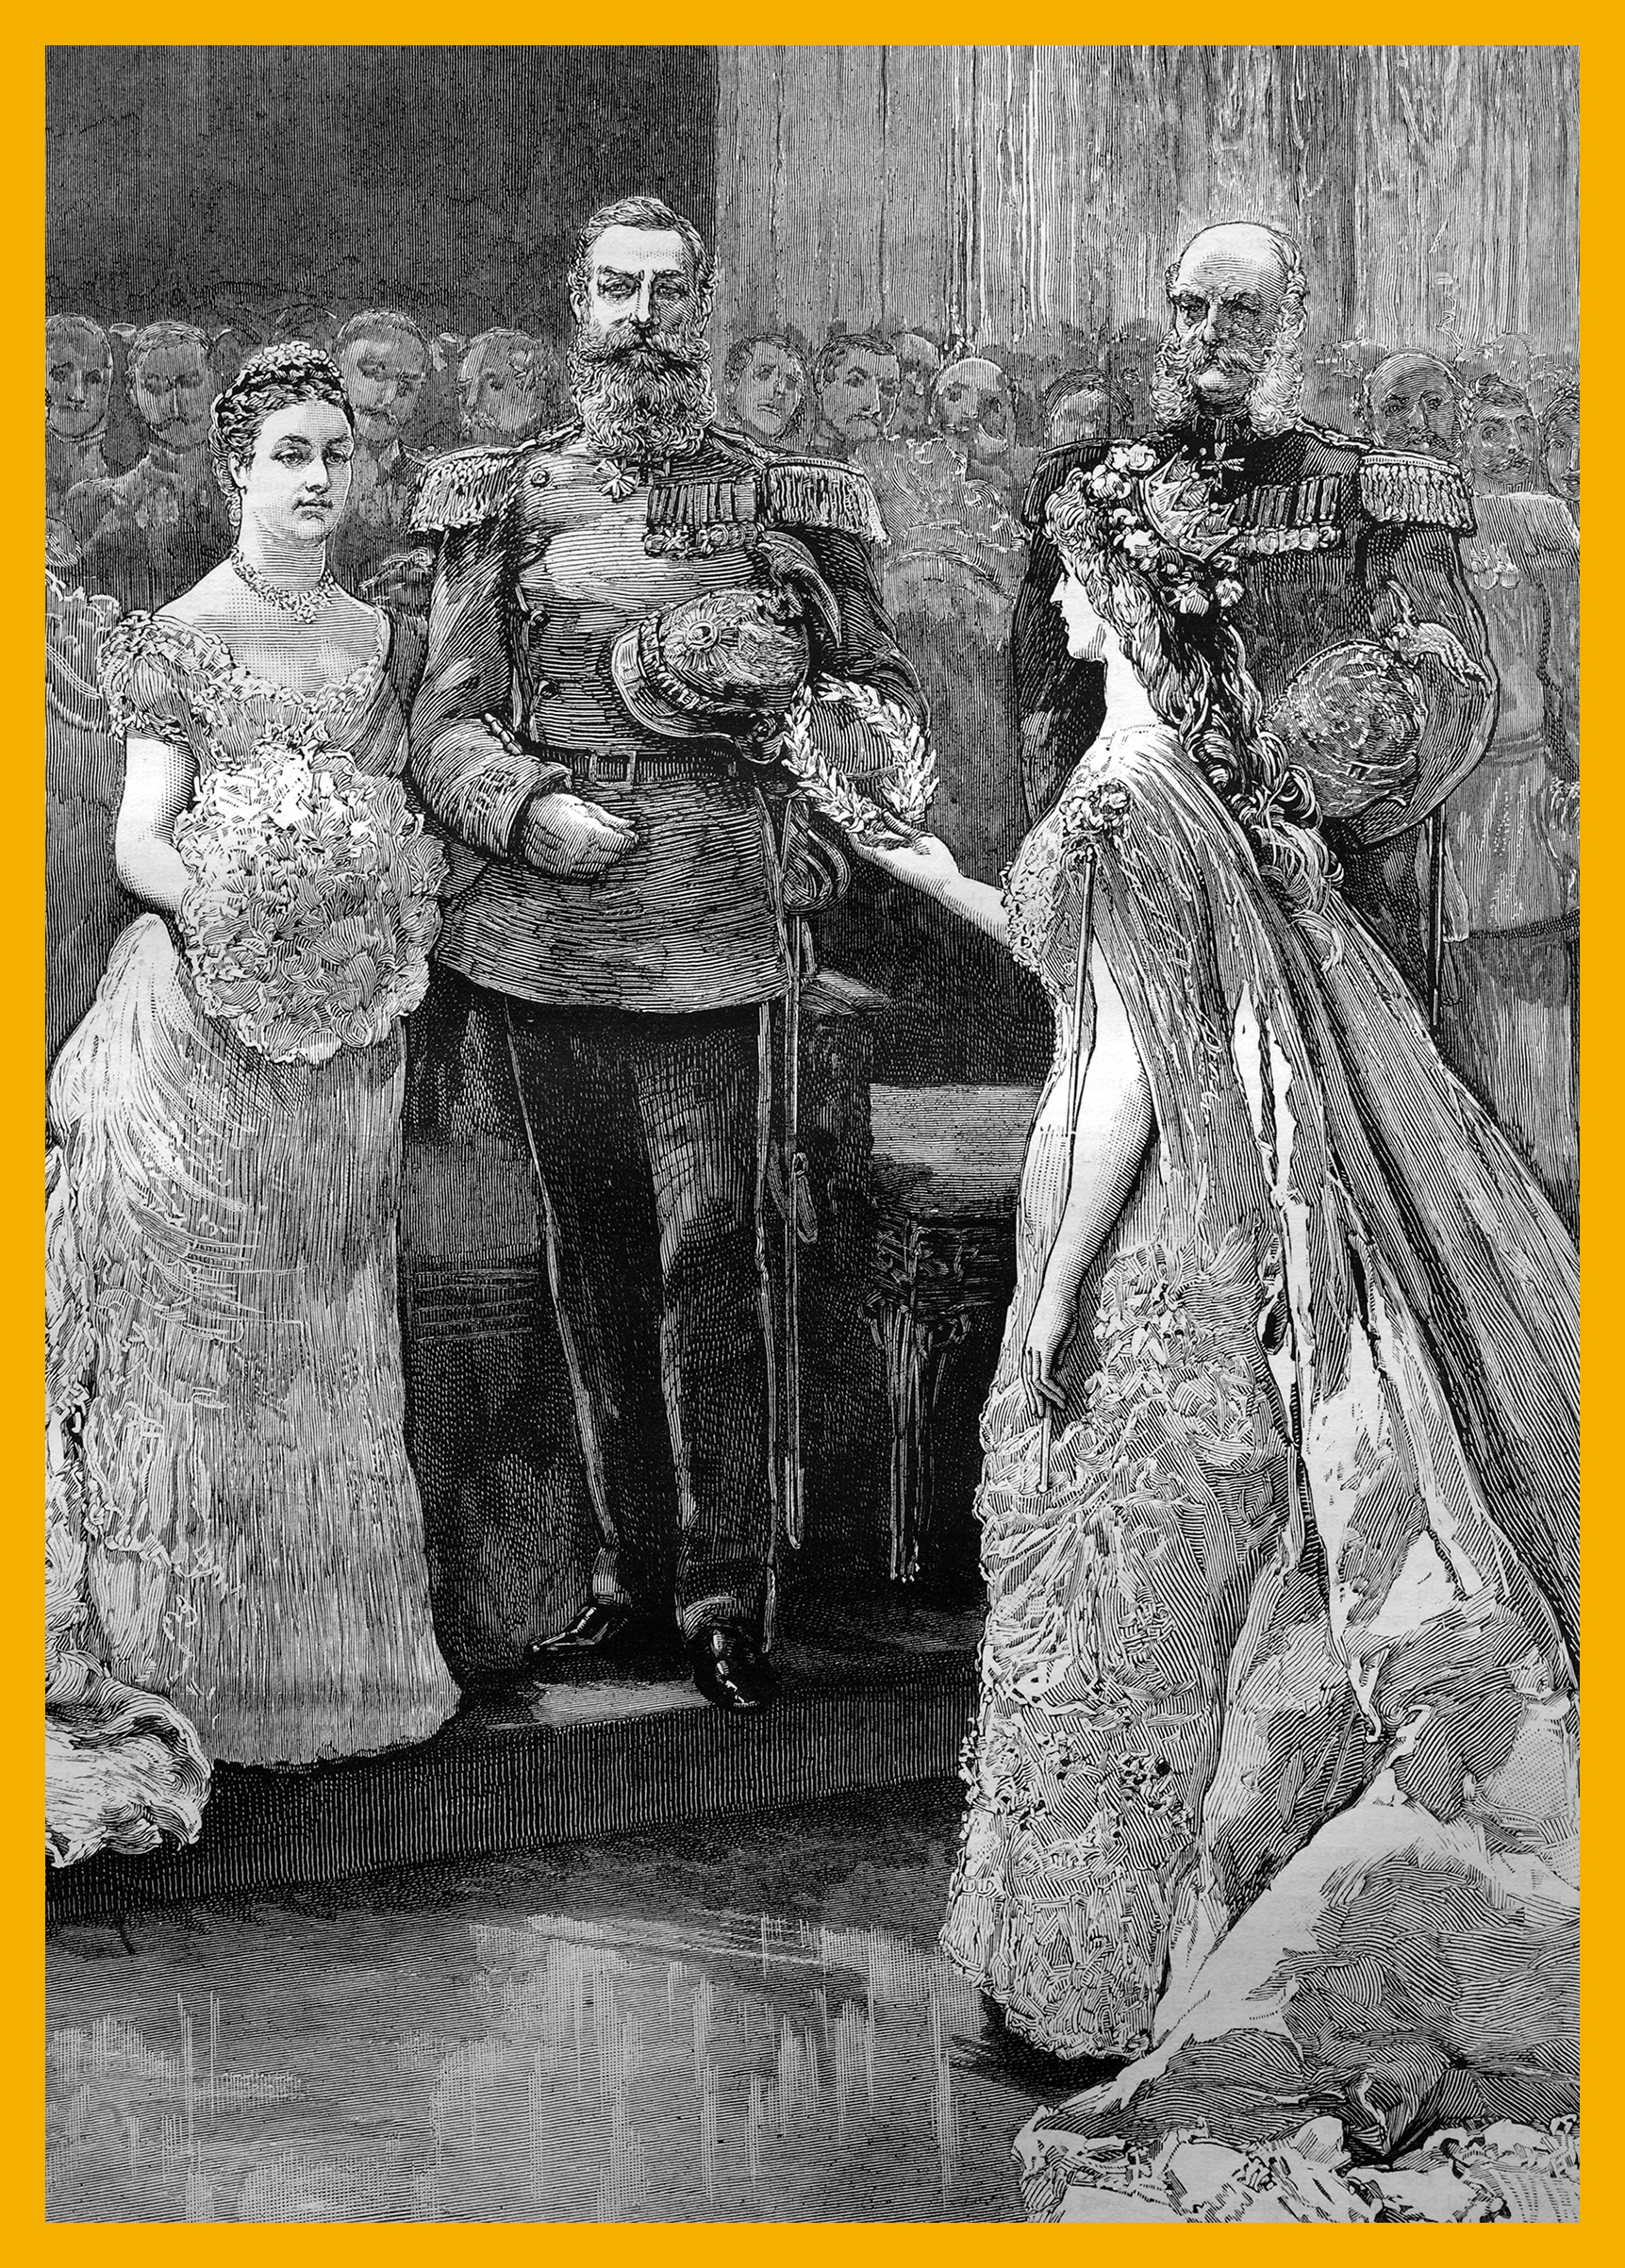 """The silver wedding of the imperial prince and princess of Germany, the koenigin minne"""" or """"queen of love"""" presenting a silver wreath to the imperial princess, historical illustration, 1884. Bildagentur-online/uig via Getty Images"""